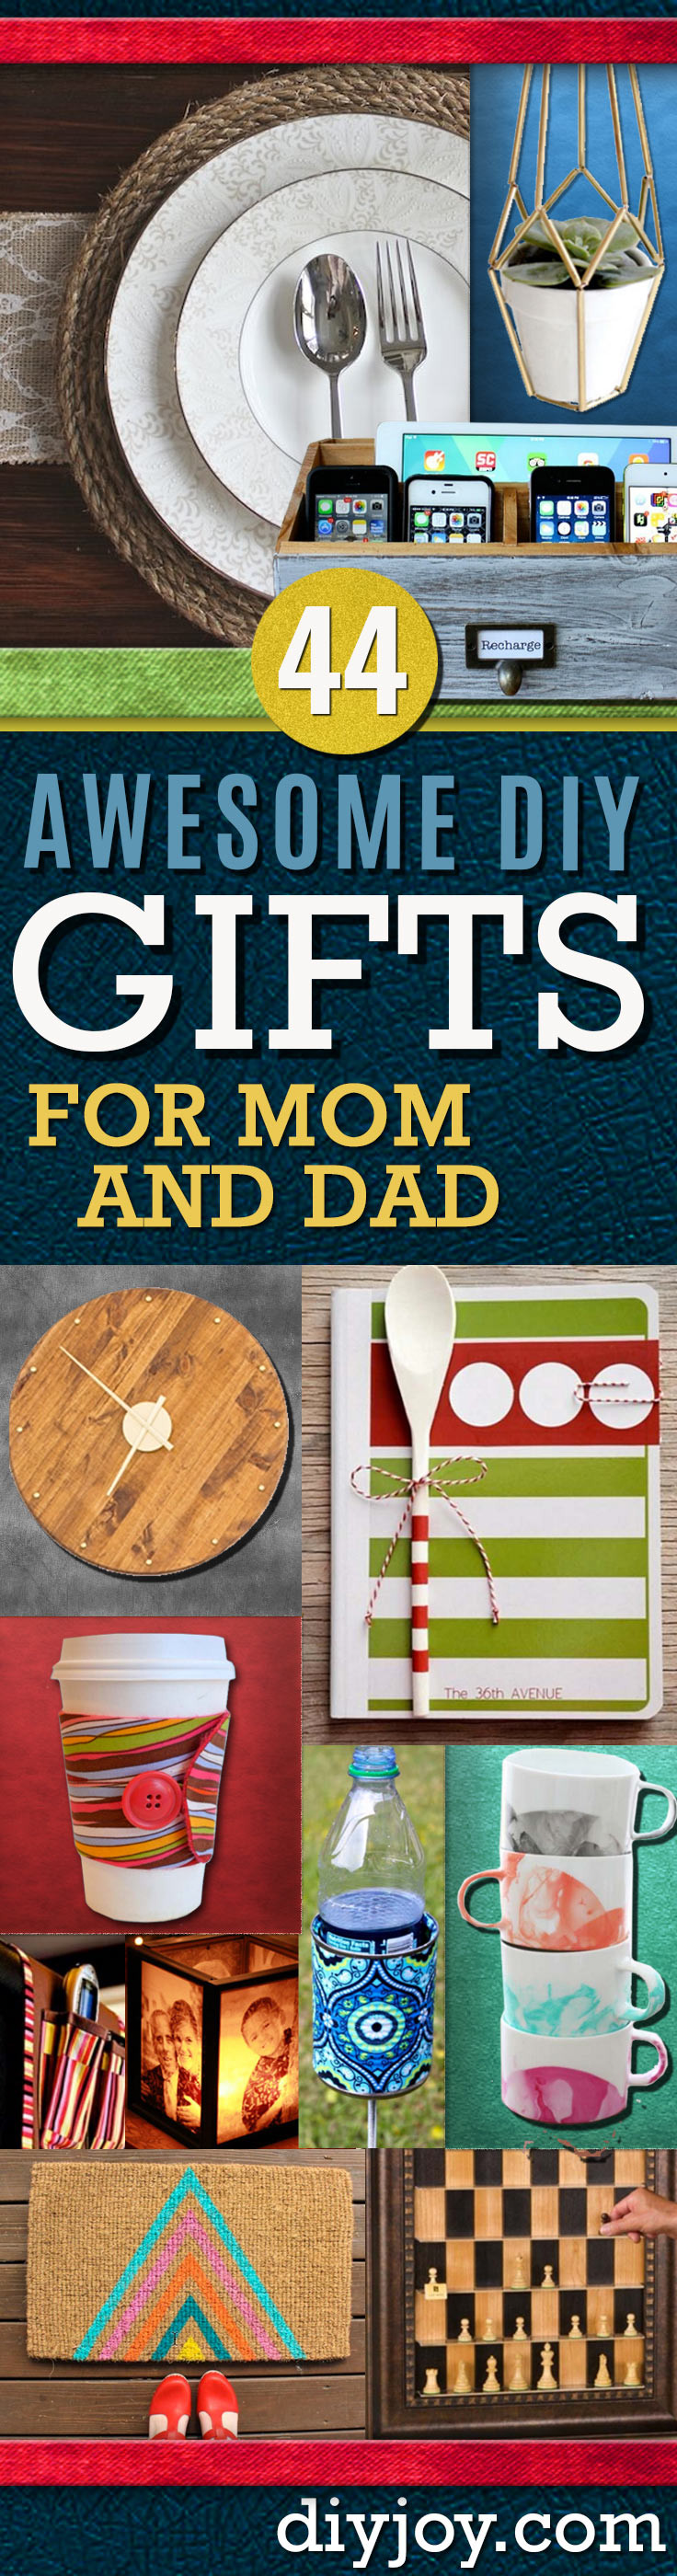 Best ideas about DIY Christmas Presents For Mom . Save or Pin Awesome DIY Gift Ideas Mom and Dad Will Love Now.